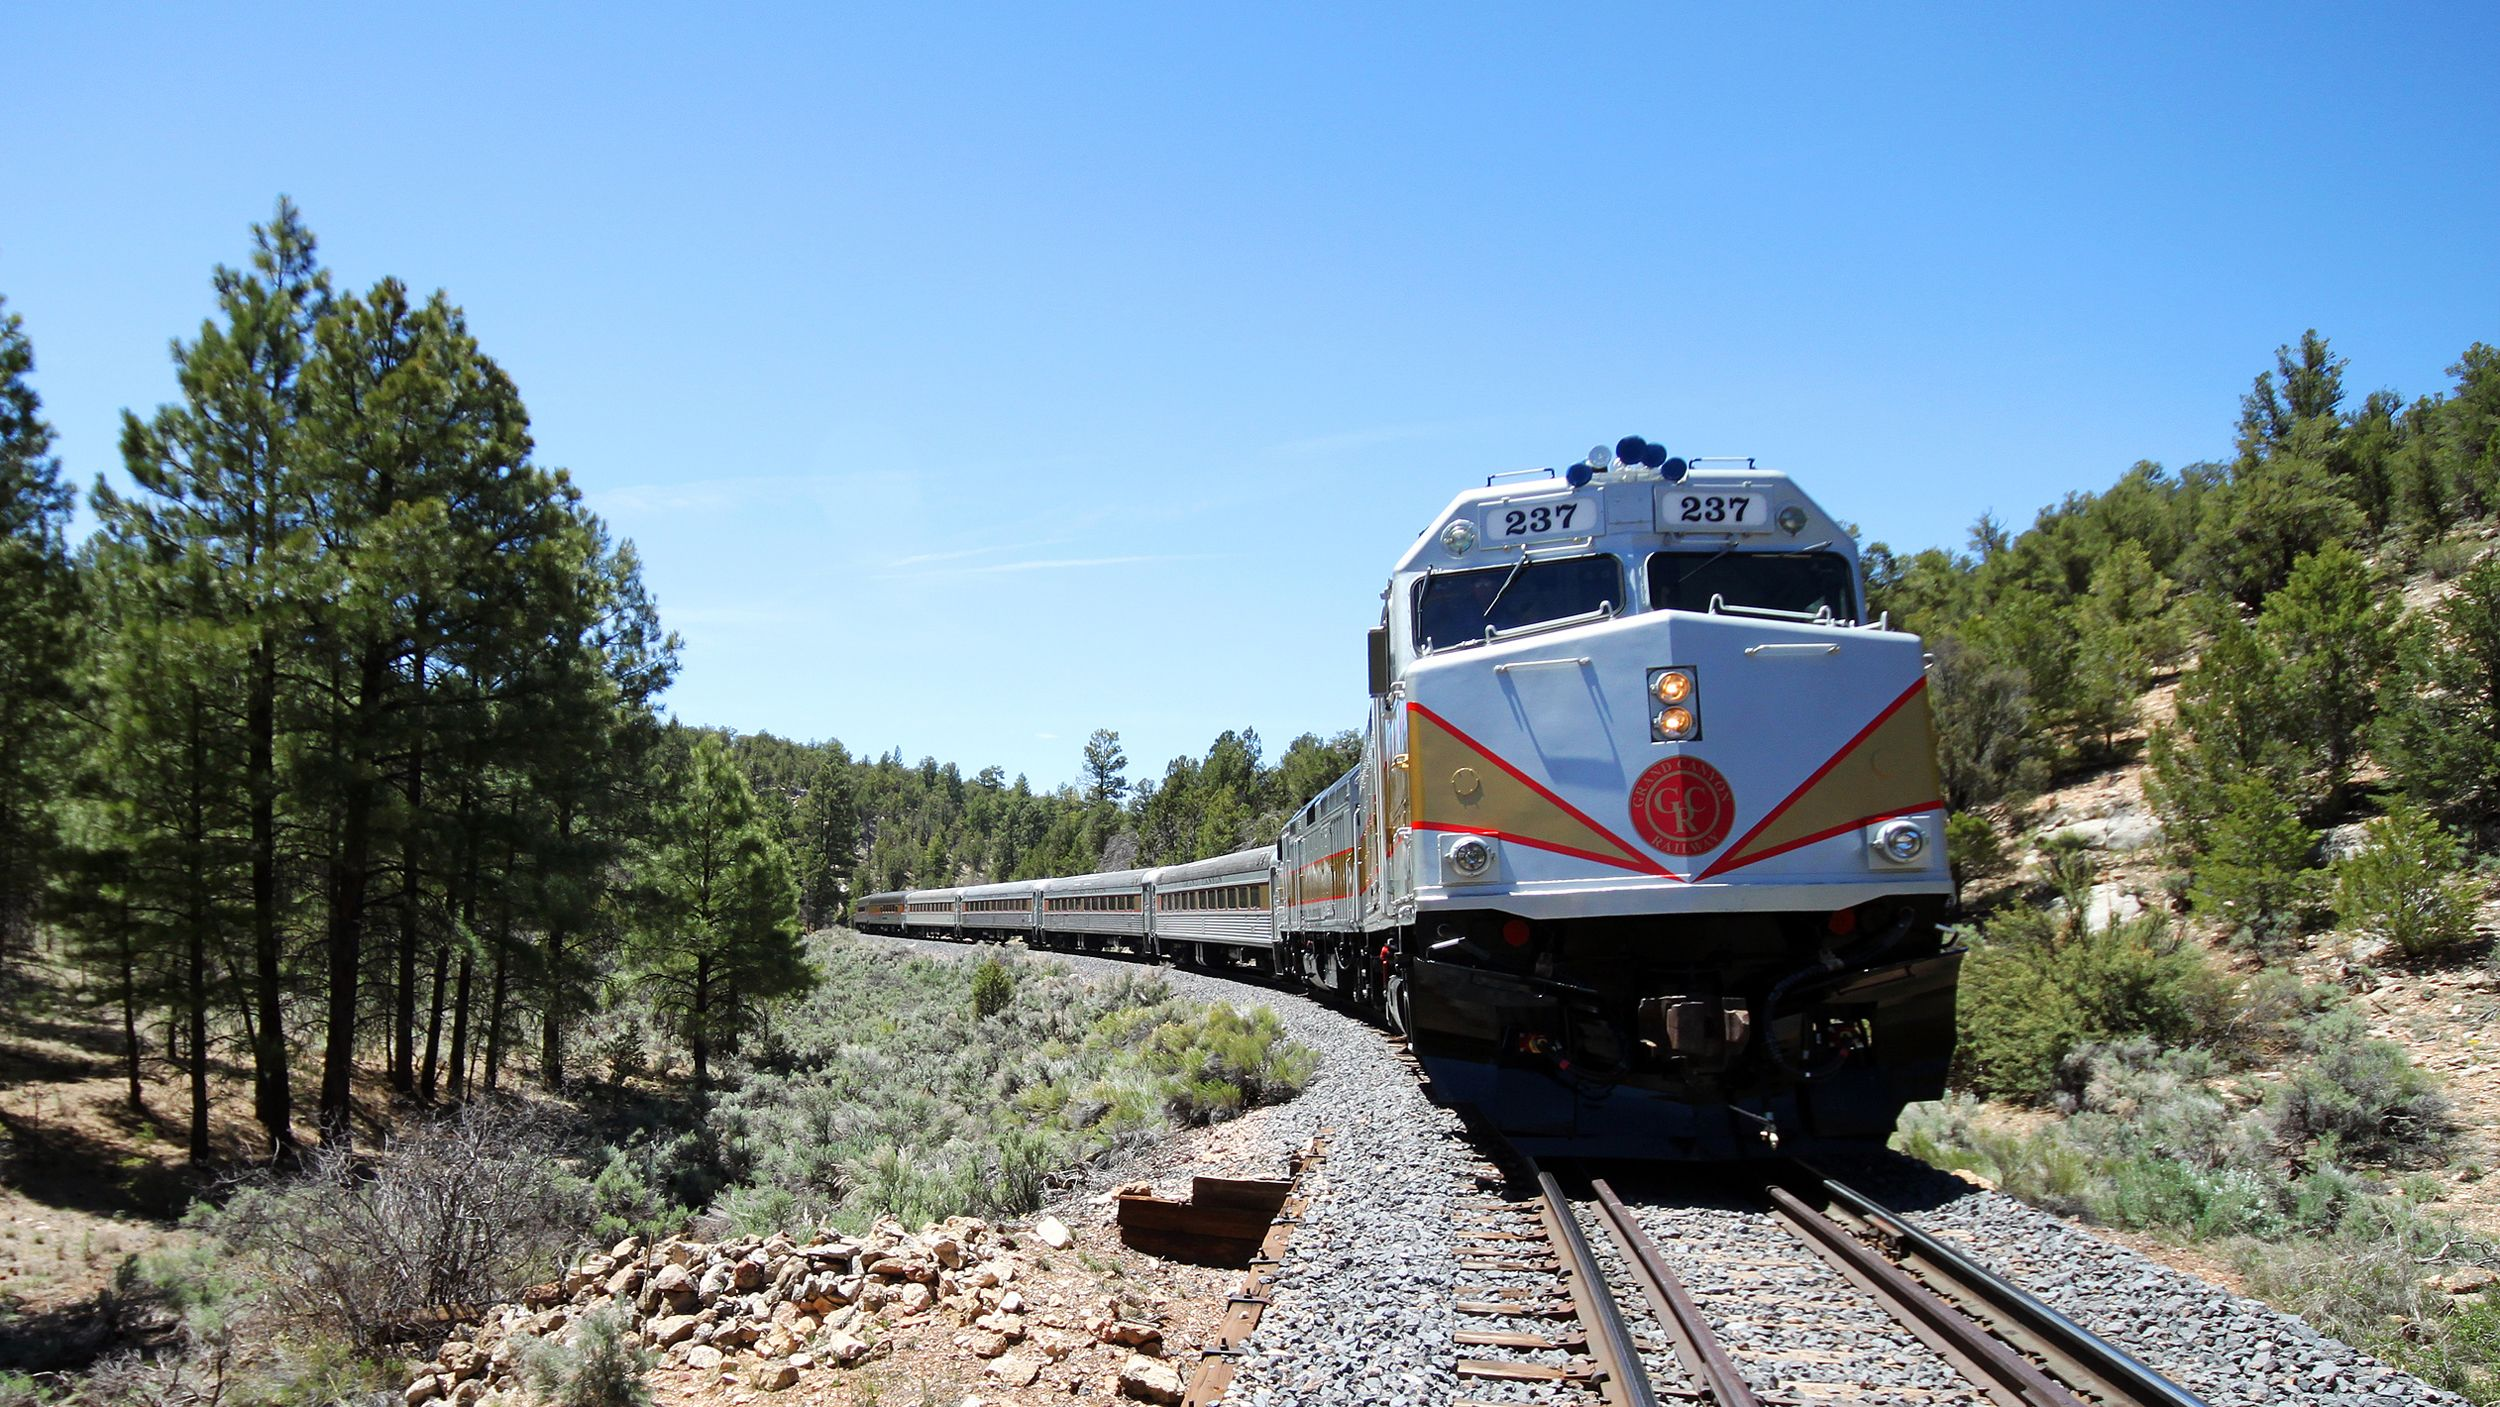 Train traveling through a forested region along the Grand Canyon Railway